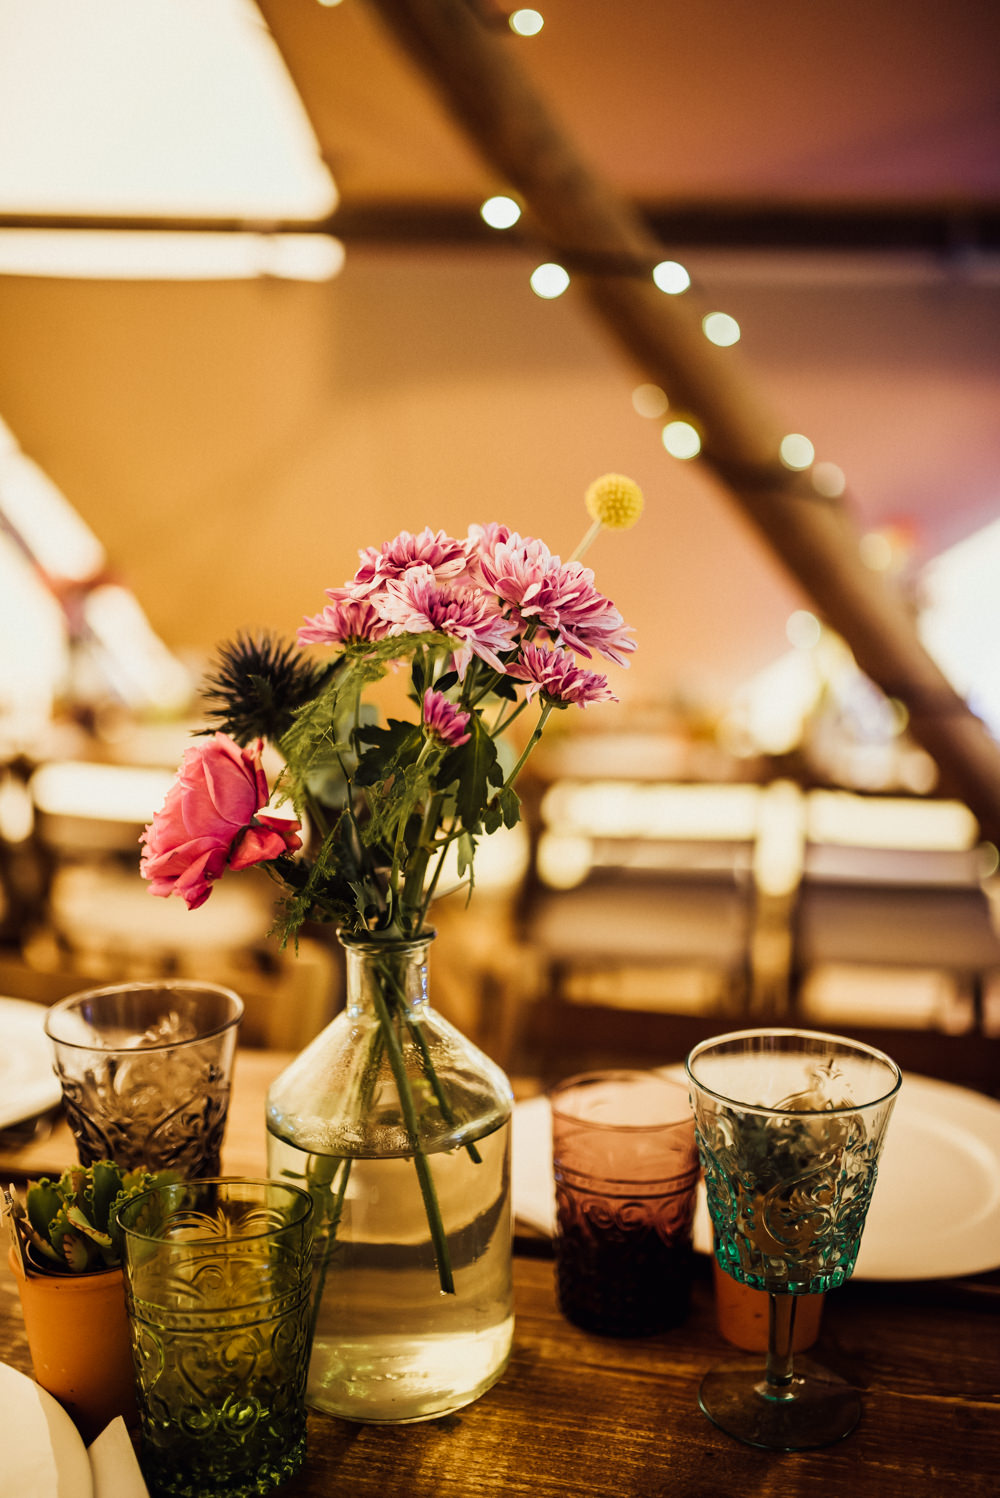 Rustic Wooden Tables Decor Decoration Bottle Flowers Long Furlong Farm Wedding Michelle Wood Photographer